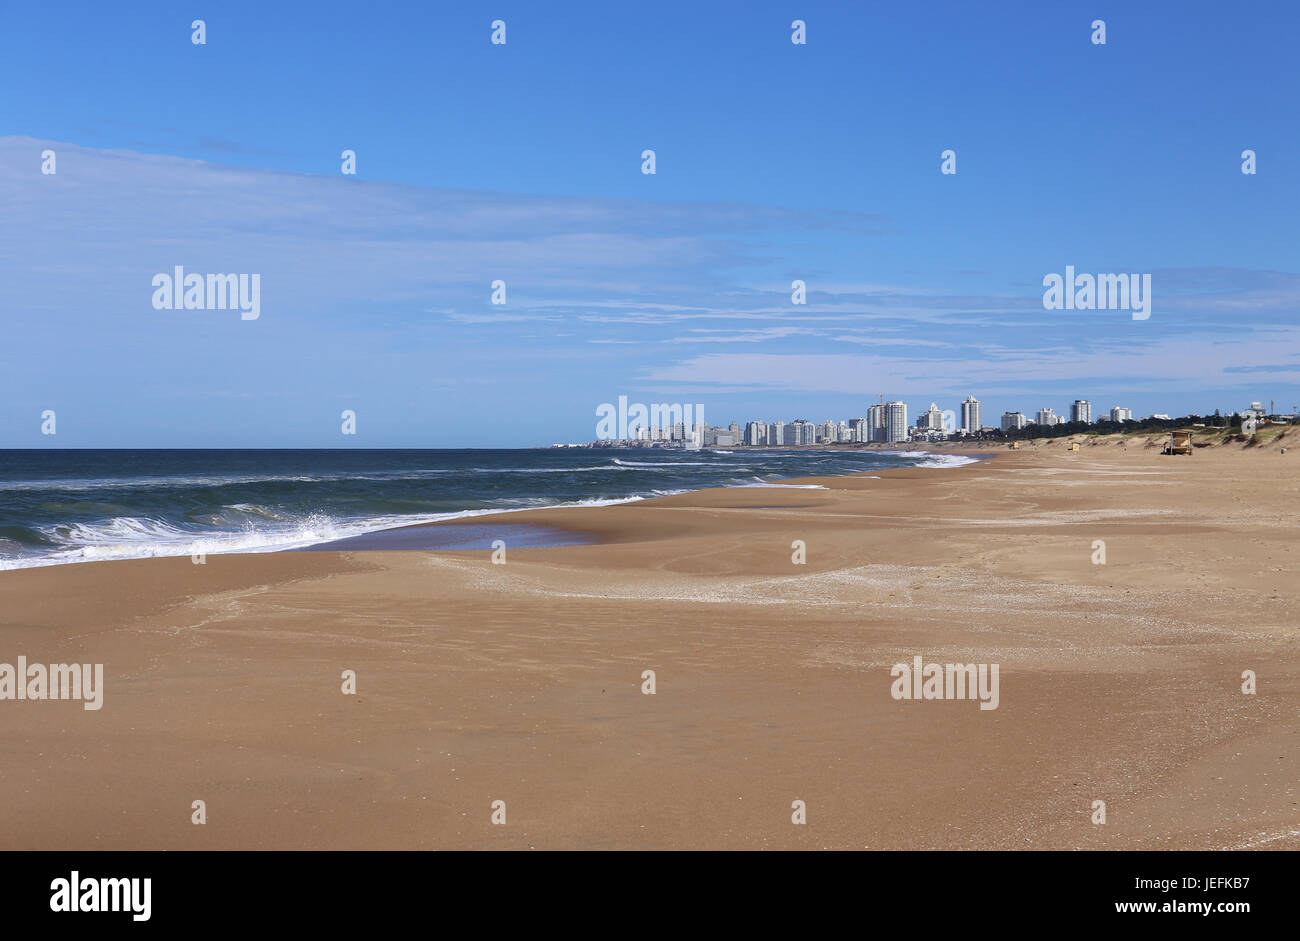 Beach in Front of Punta del Este, Uruguay April 2017 Stock Photo